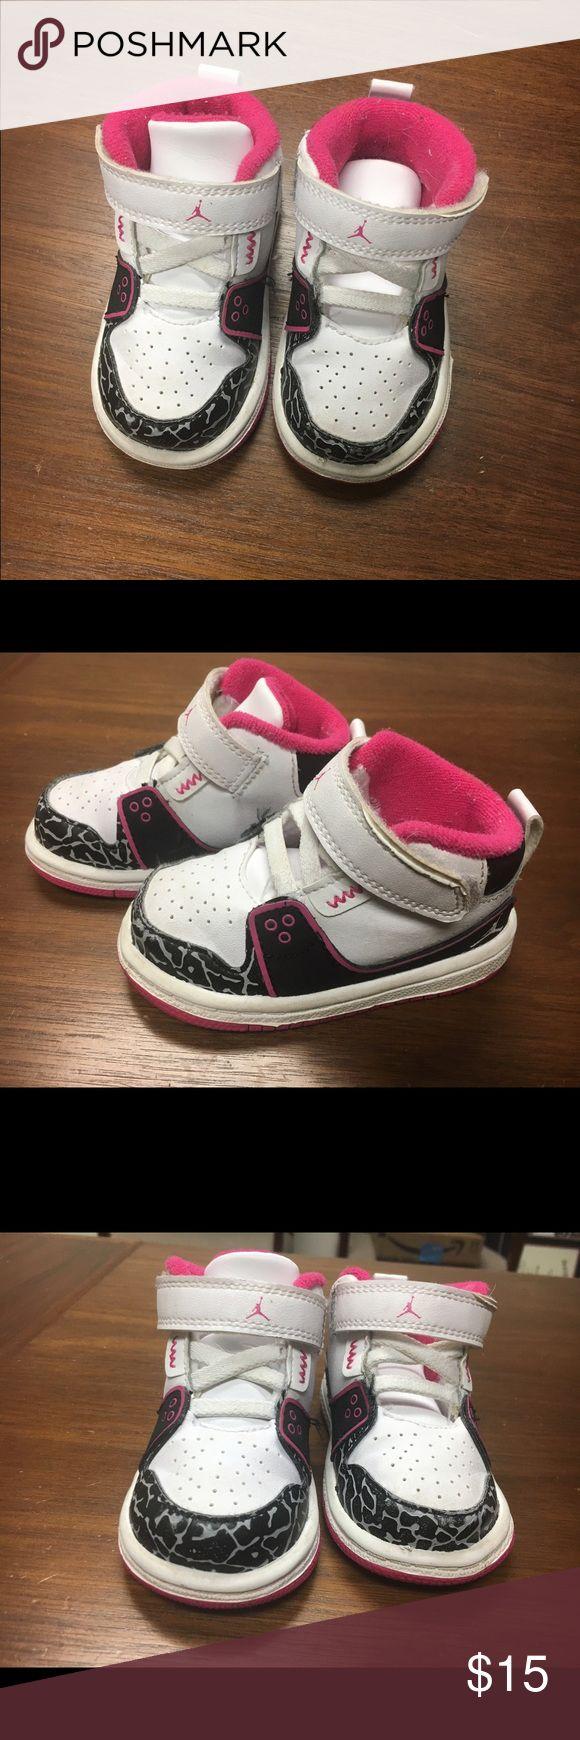 Size 4C pink and white Jordan sneakers Size 4C pink and white Jordan sneakers Jordan Shoes Sneakers